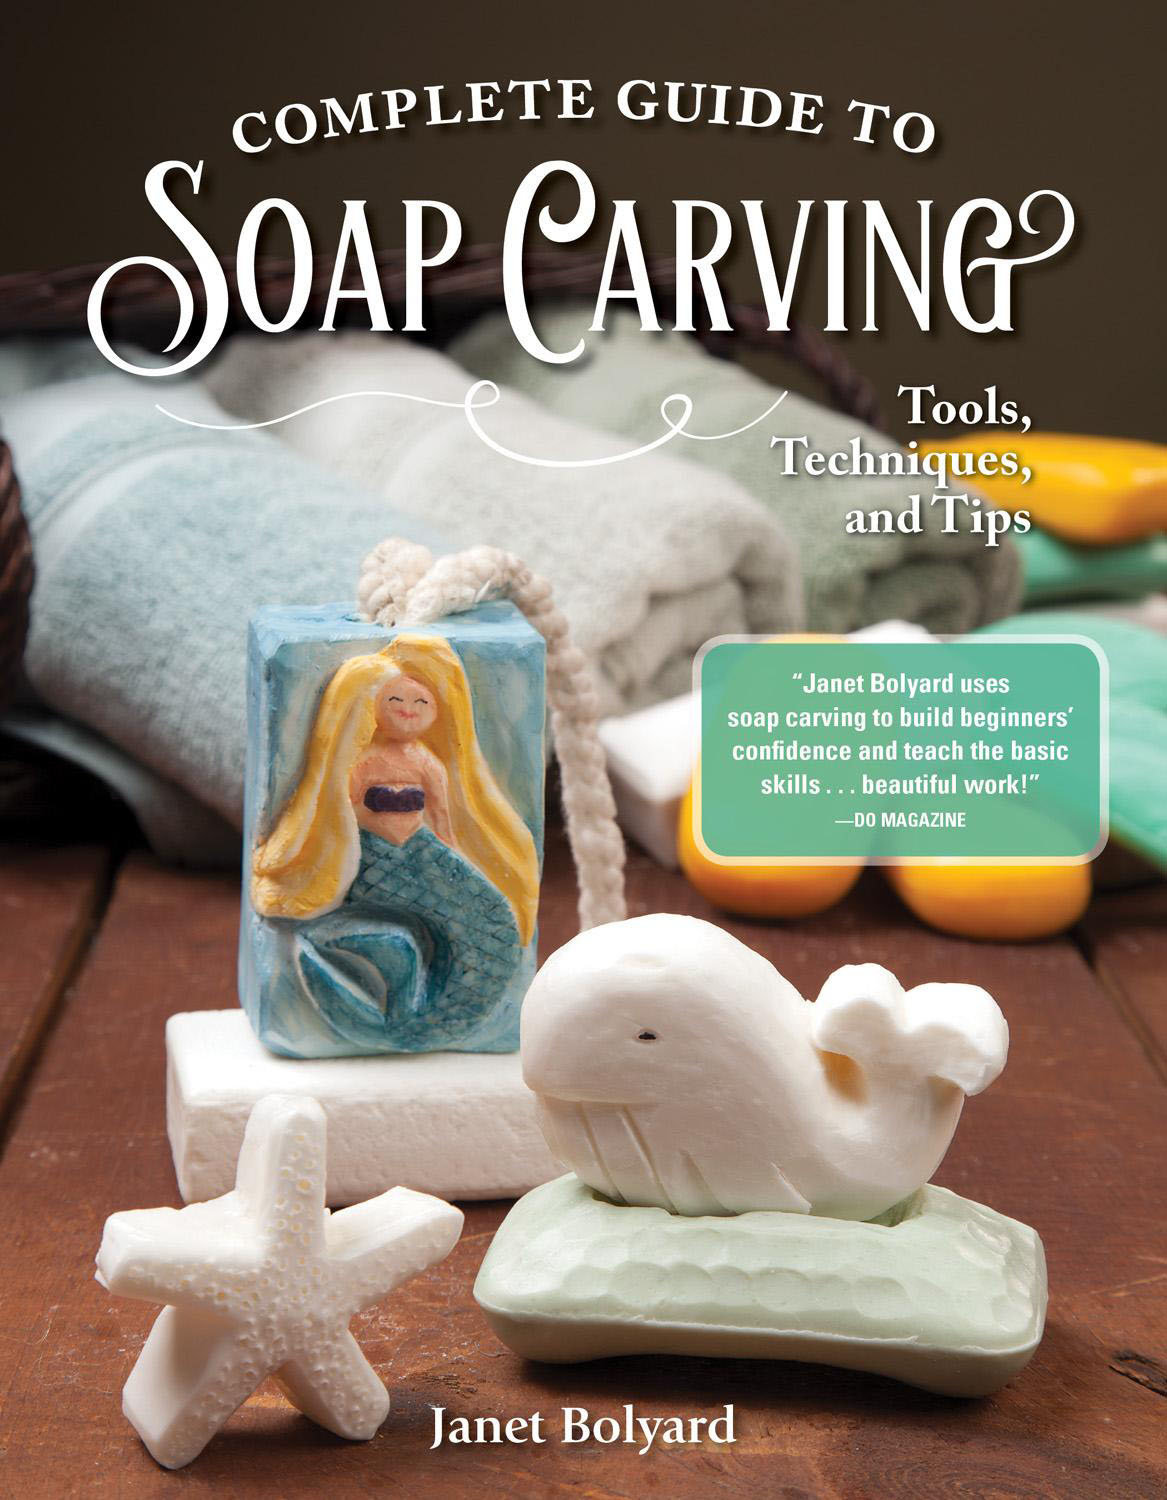 Soap Carving is Good, Clean Fun